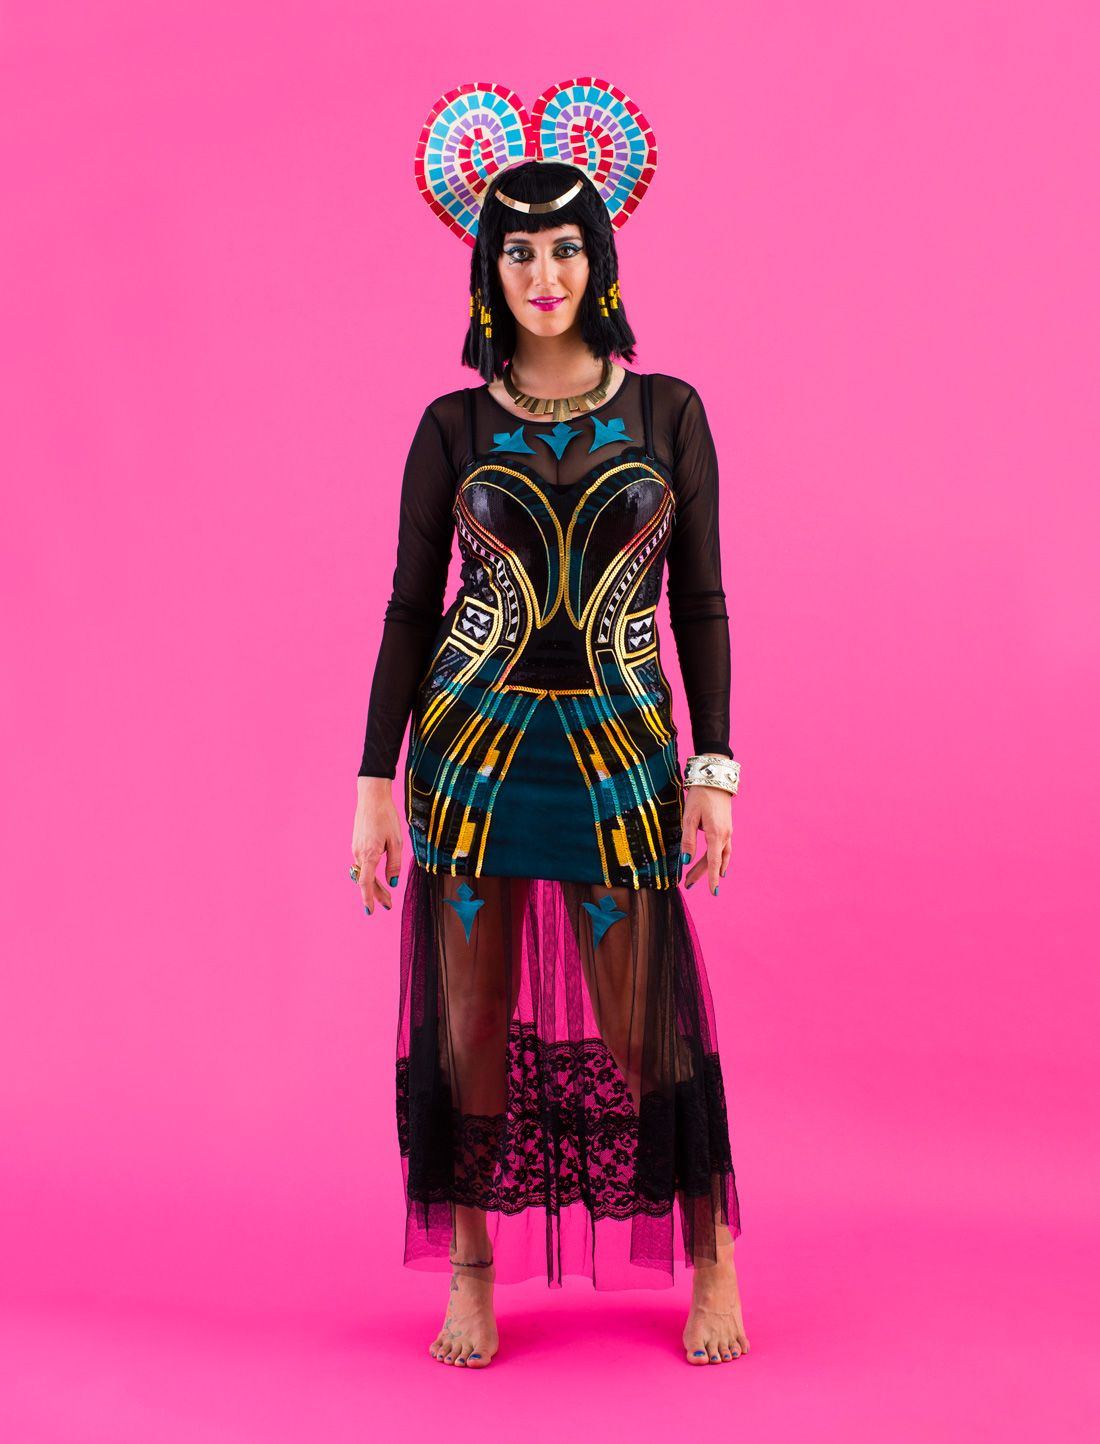 Diy All Of Katy Perrys Dark Horse Video Costumes For -9706